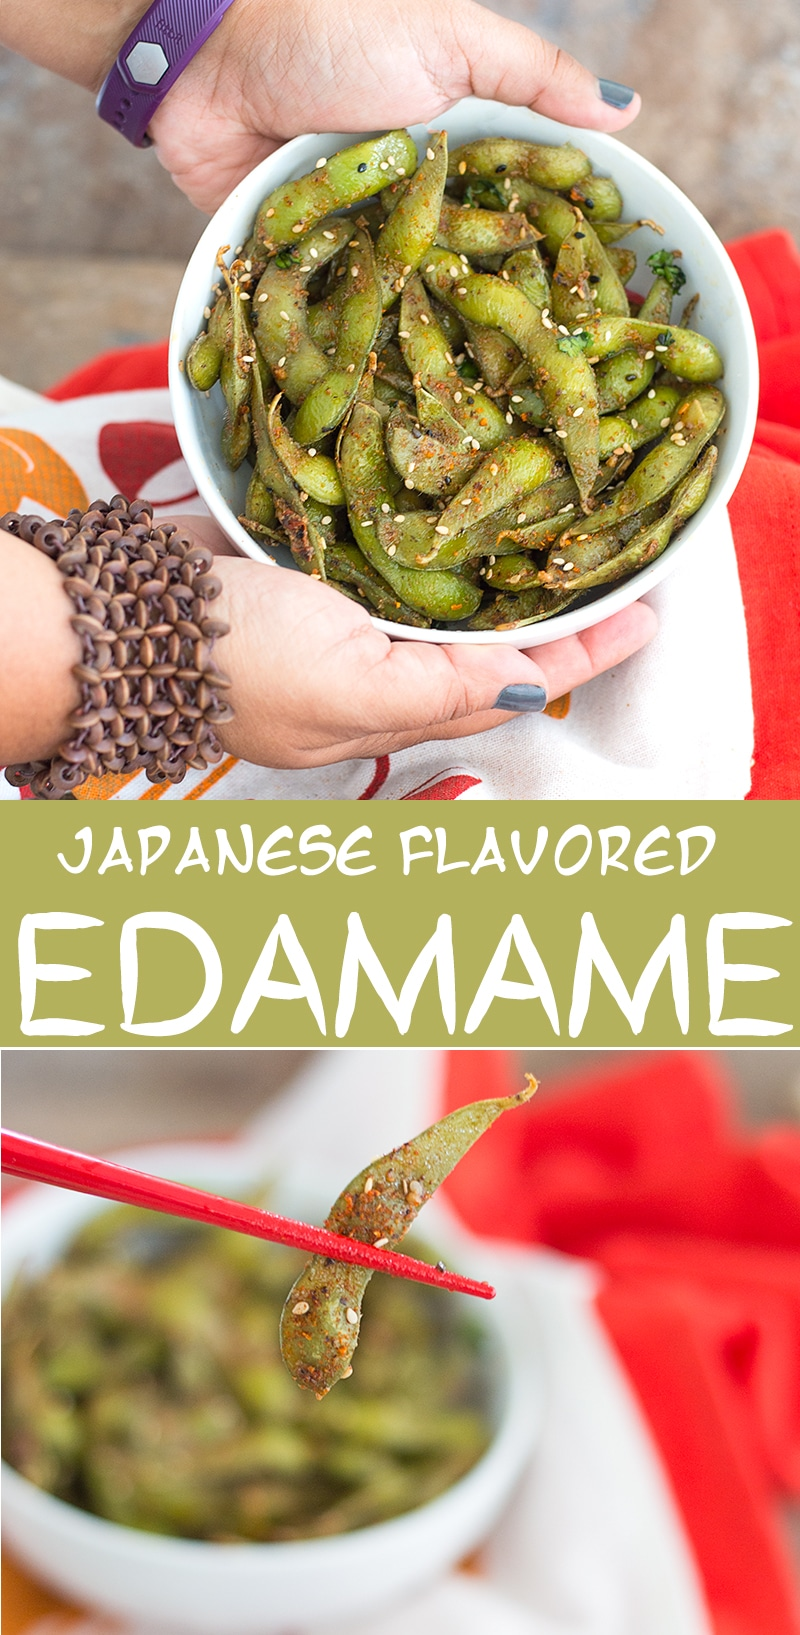 These Edamame Snacks are flavored with Japanese Seven Spices and Sesame Seeds. In under 20 Minutes, You Will Have the Perfect Healthy Snacks with a Kick!